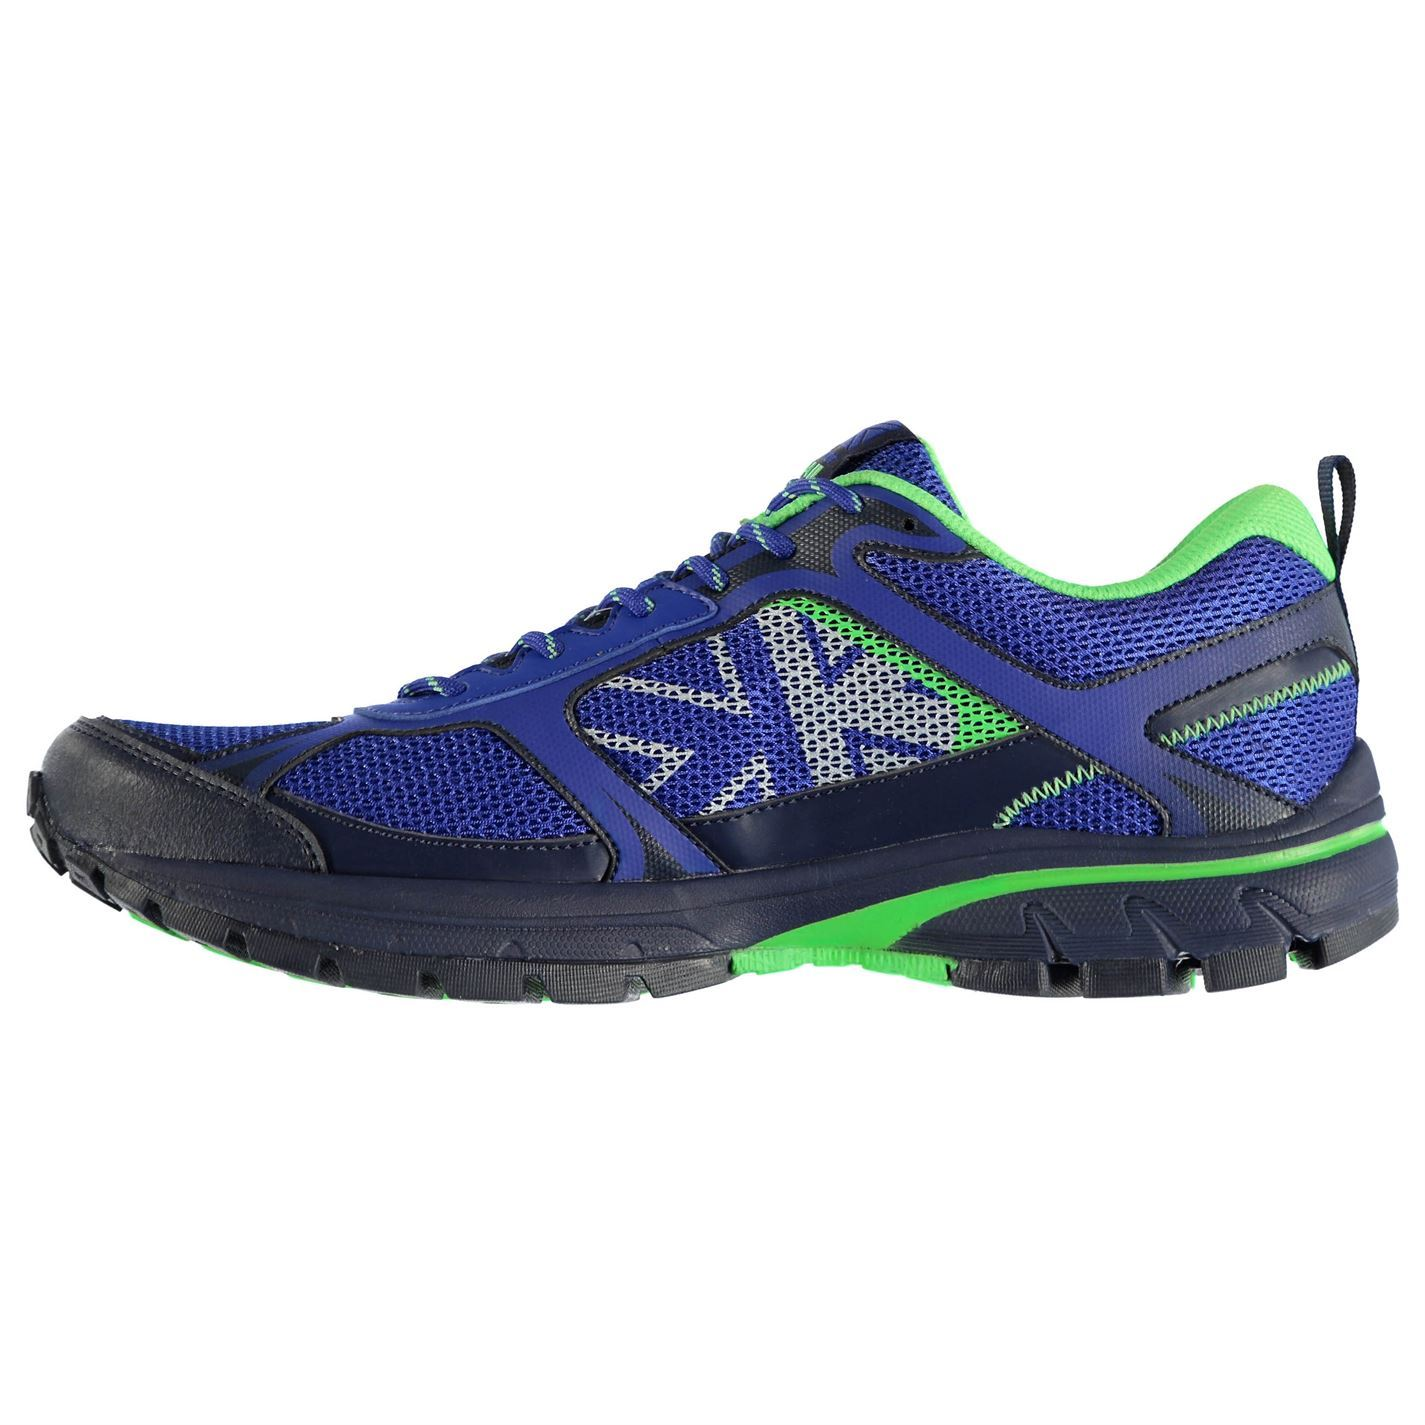 Ebay Mens Trail Running Shoes